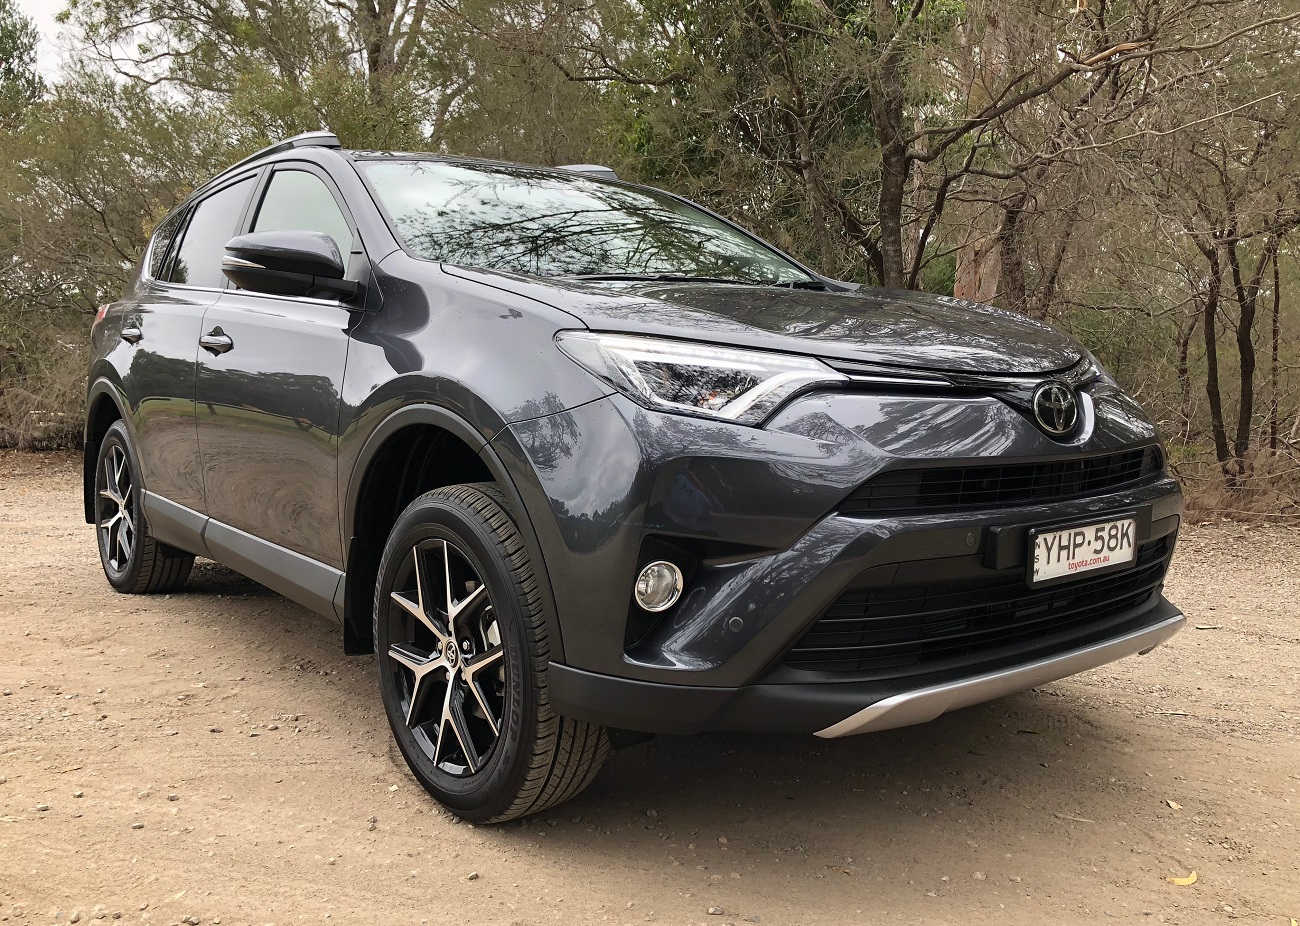 2018 toyota rav4 gxl review toyota lifestyle. Black Bedroom Furniture Sets. Home Design Ideas